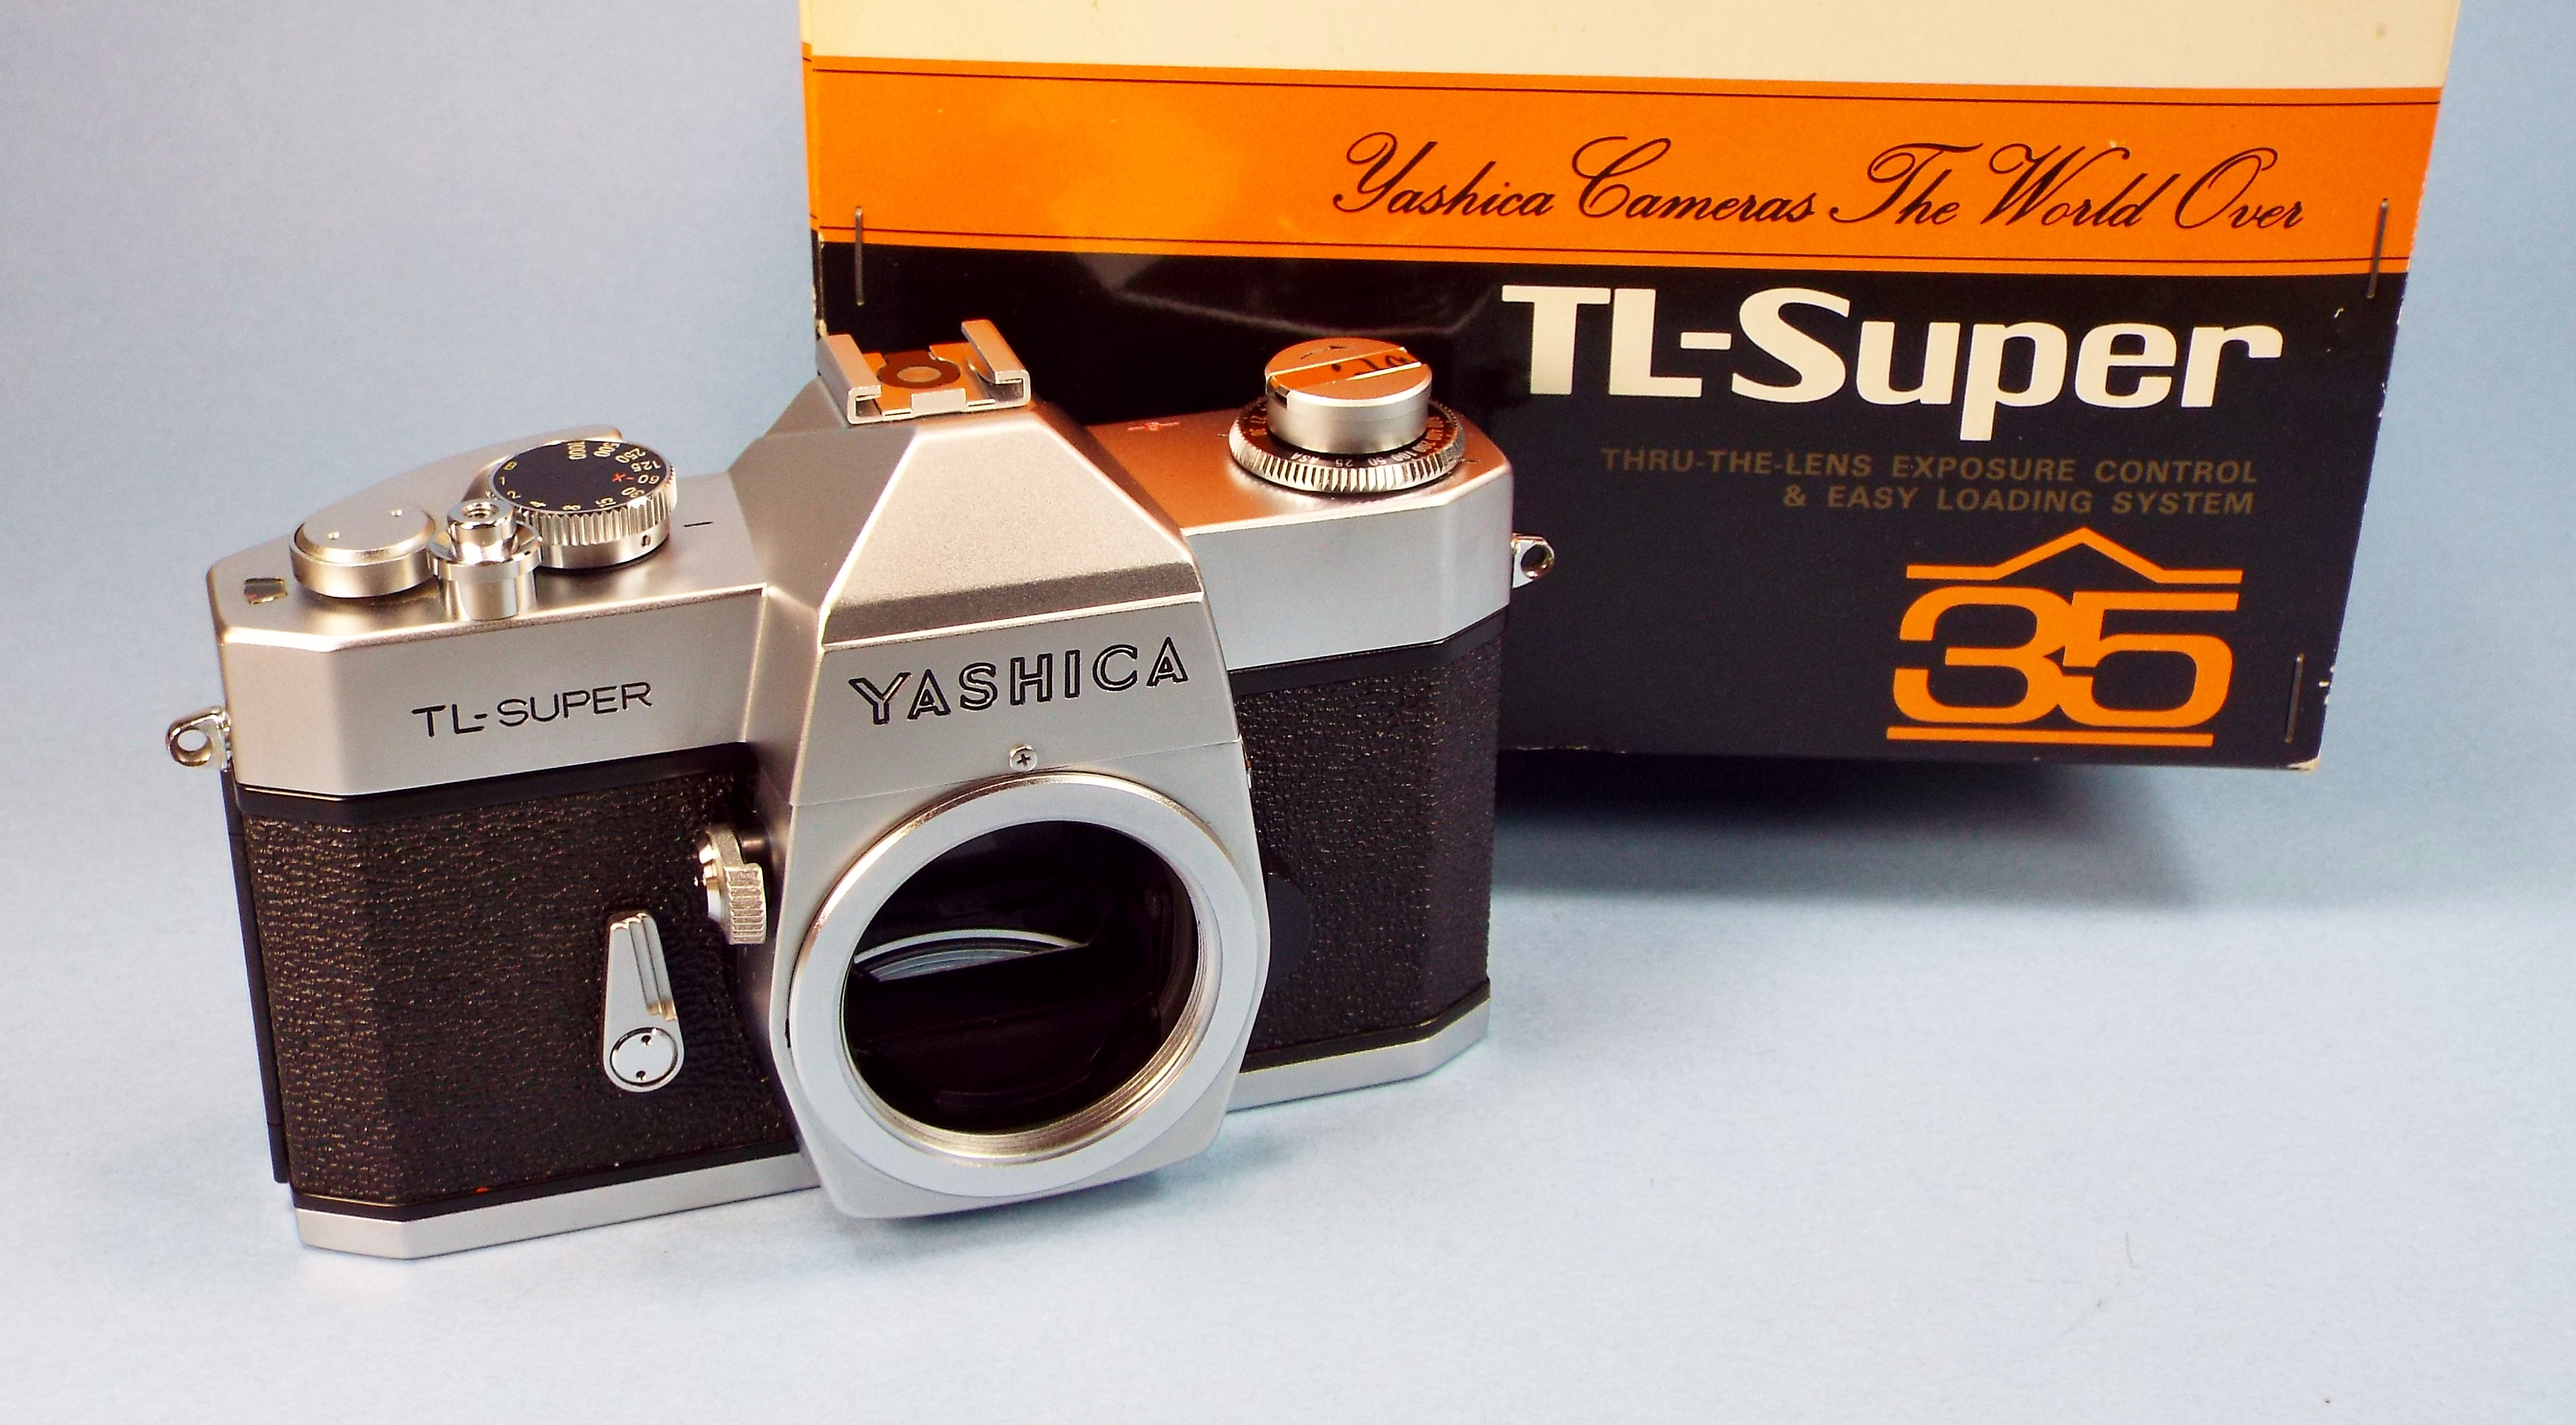 Yashica TL-Super with Box